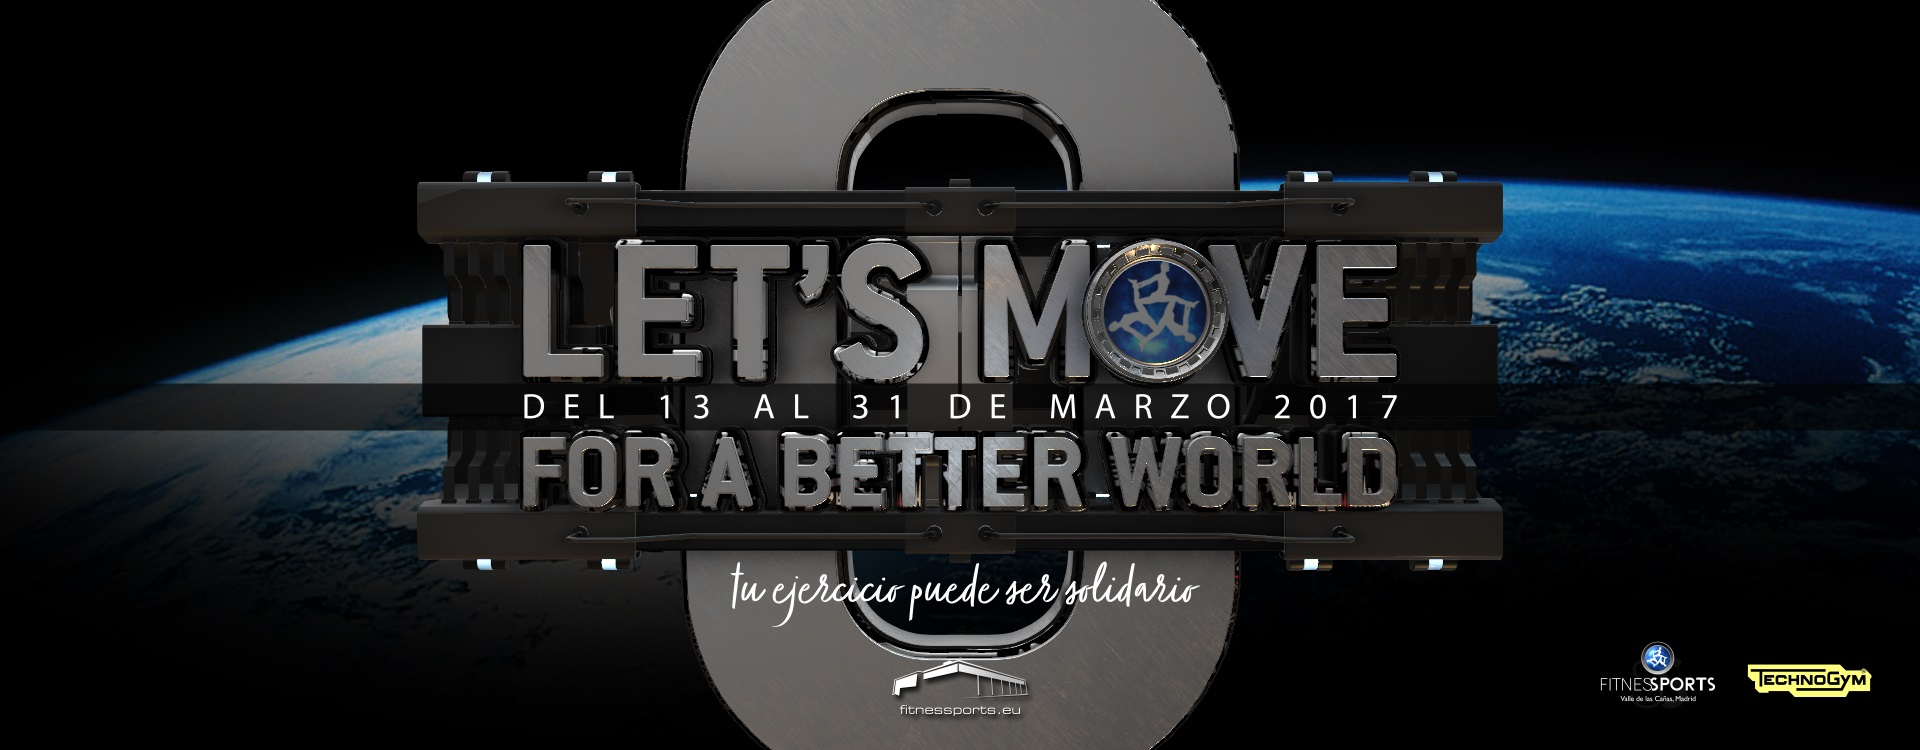 Campaña mundial Lets Move for a Better World 2017